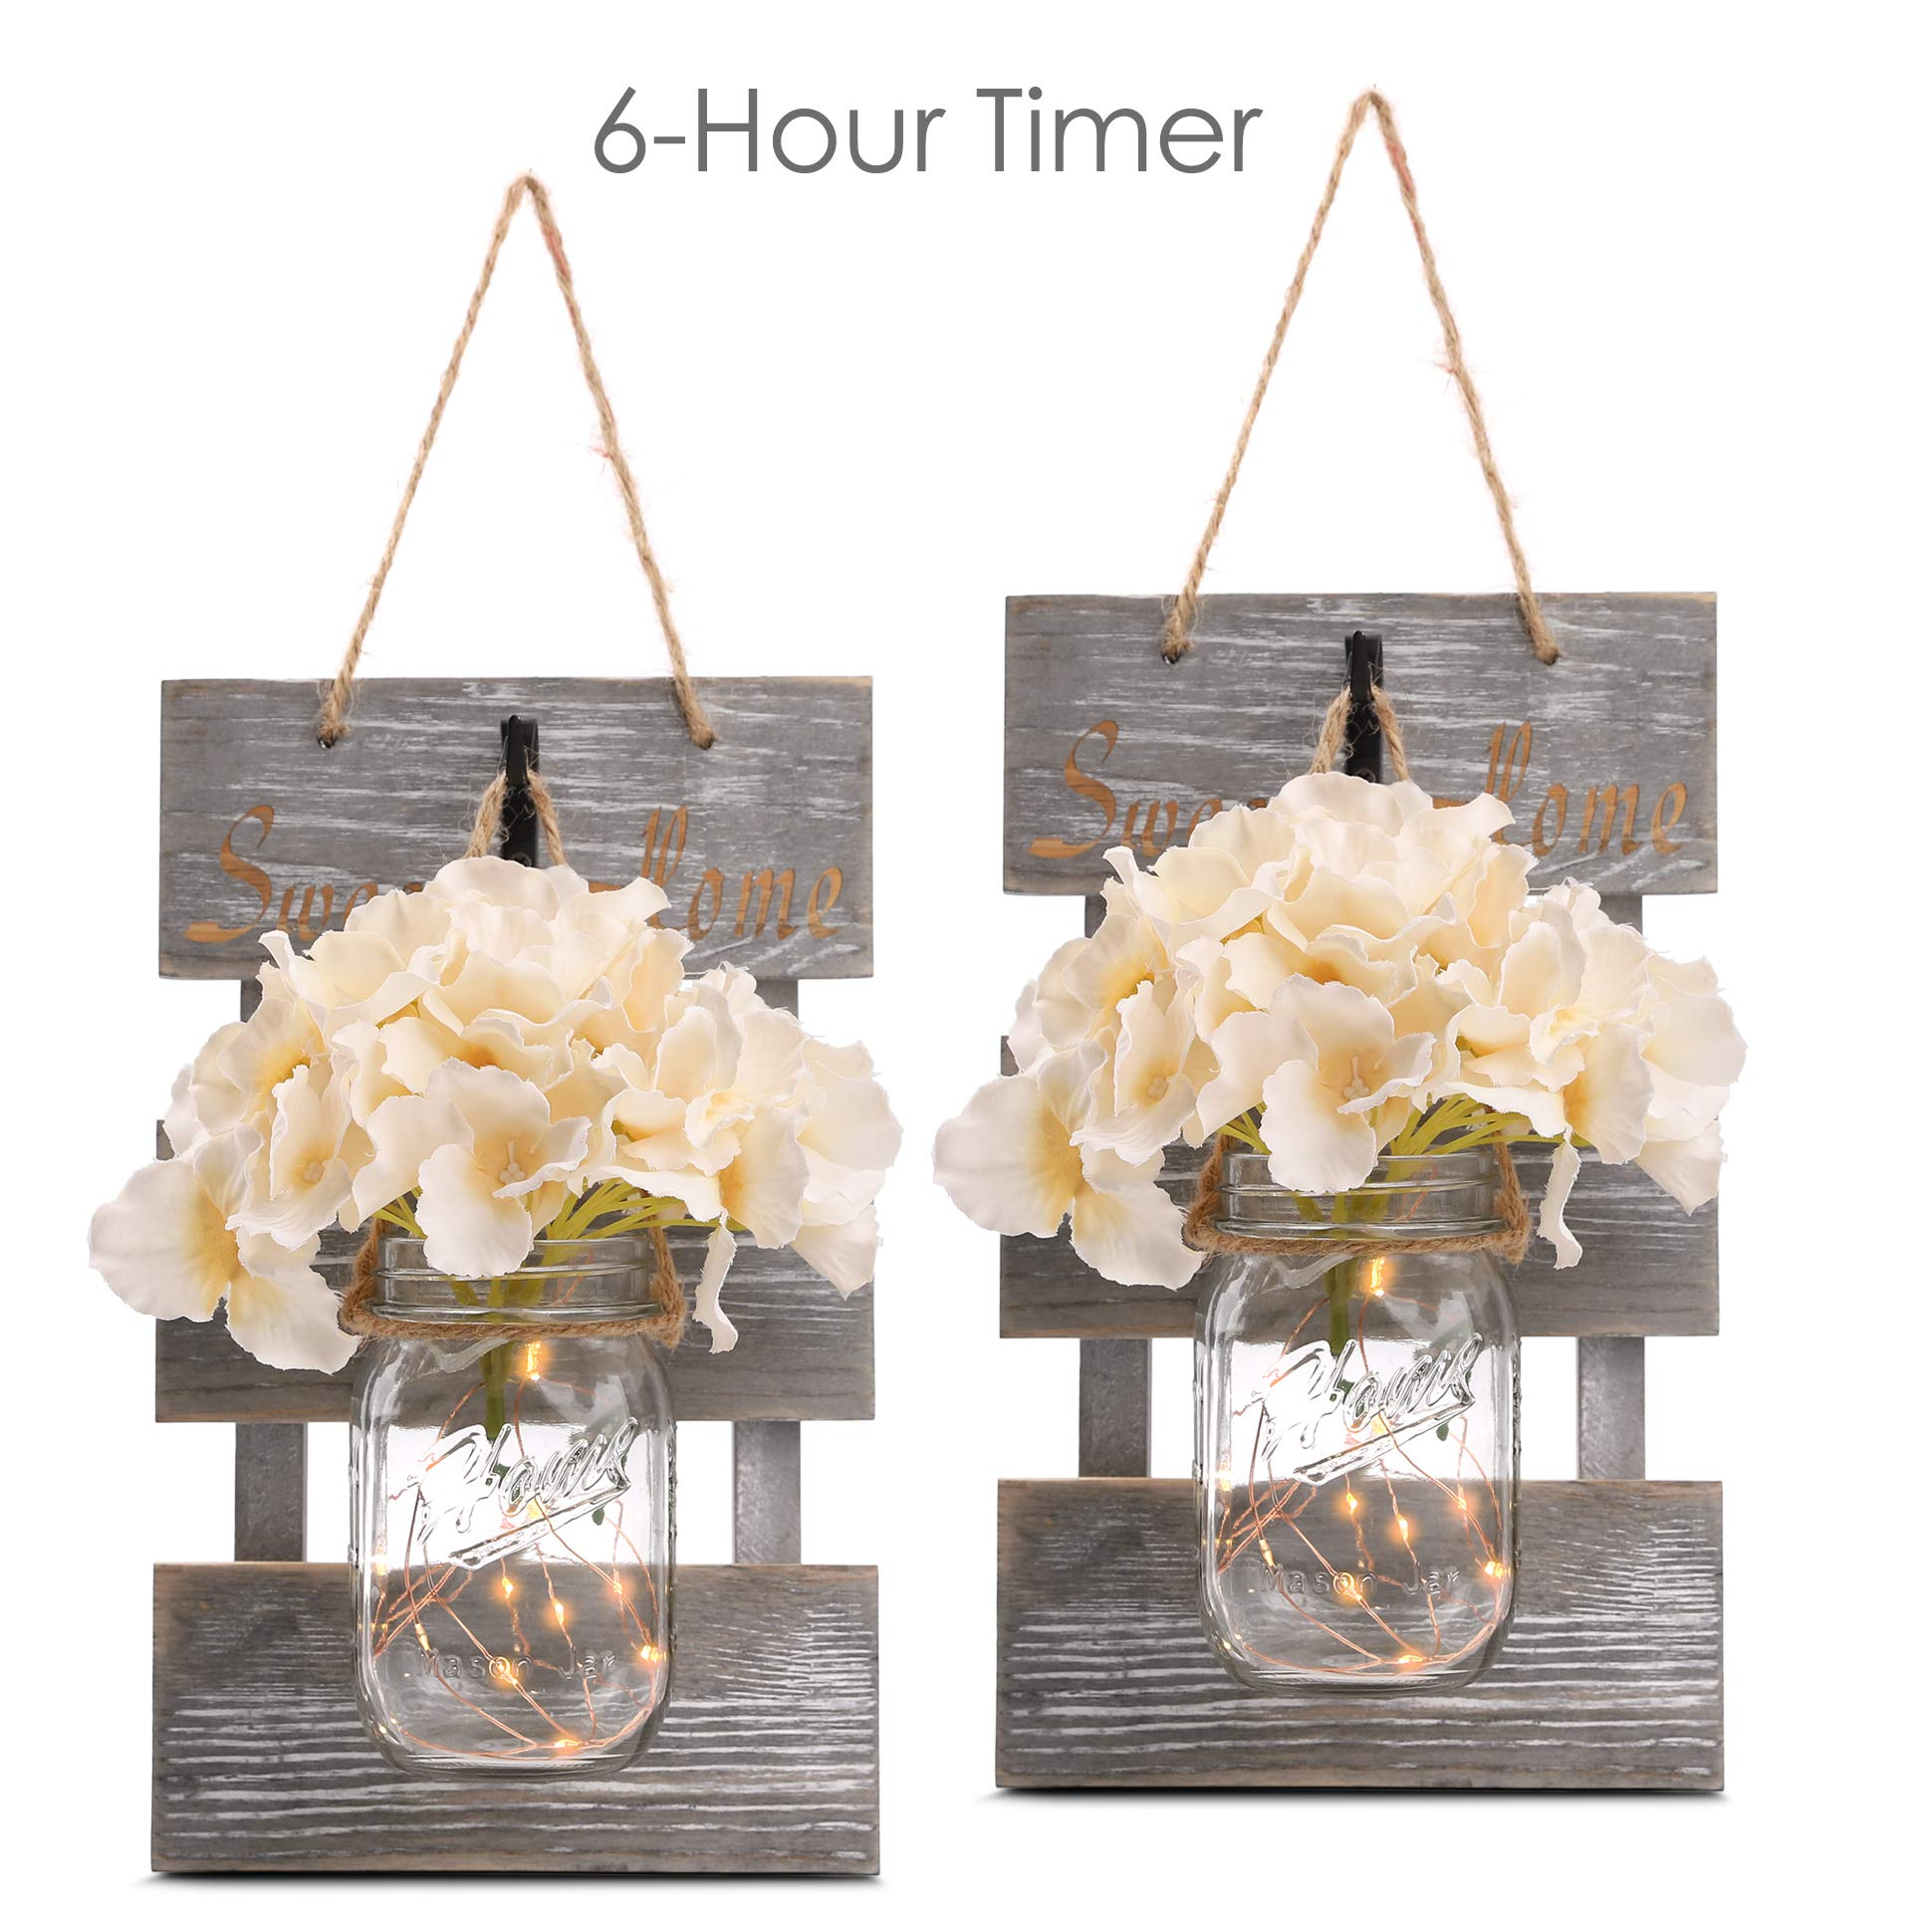 HOMKO Mason Jar Wall Decor with 6-Hour Timer LED Lights and Flowers - Rustic Home Decor (Set of 2) by HOMKO